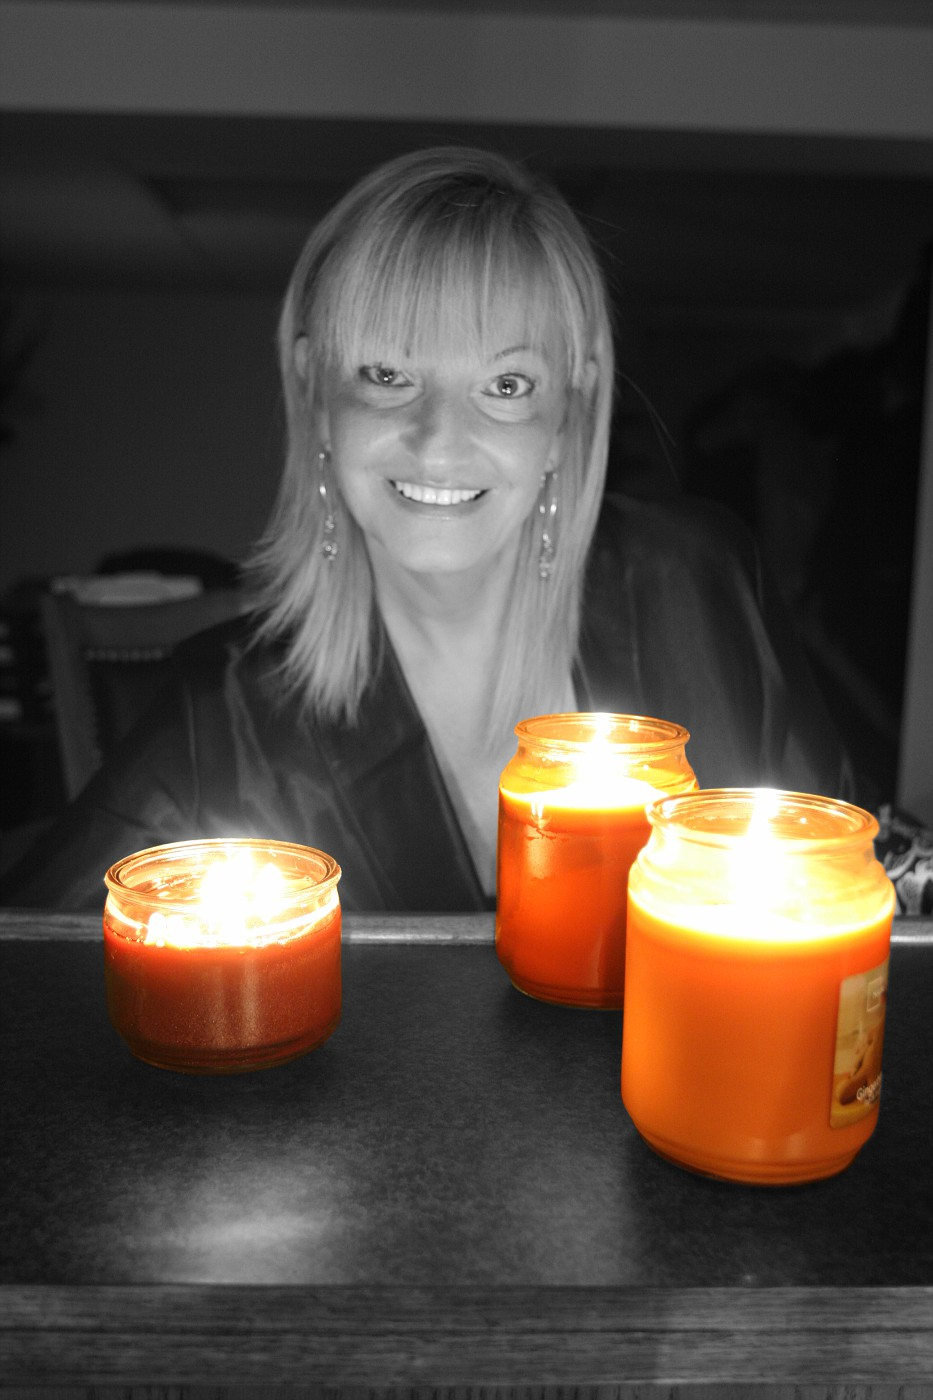 Candles Glowing in a Monochrome Photo